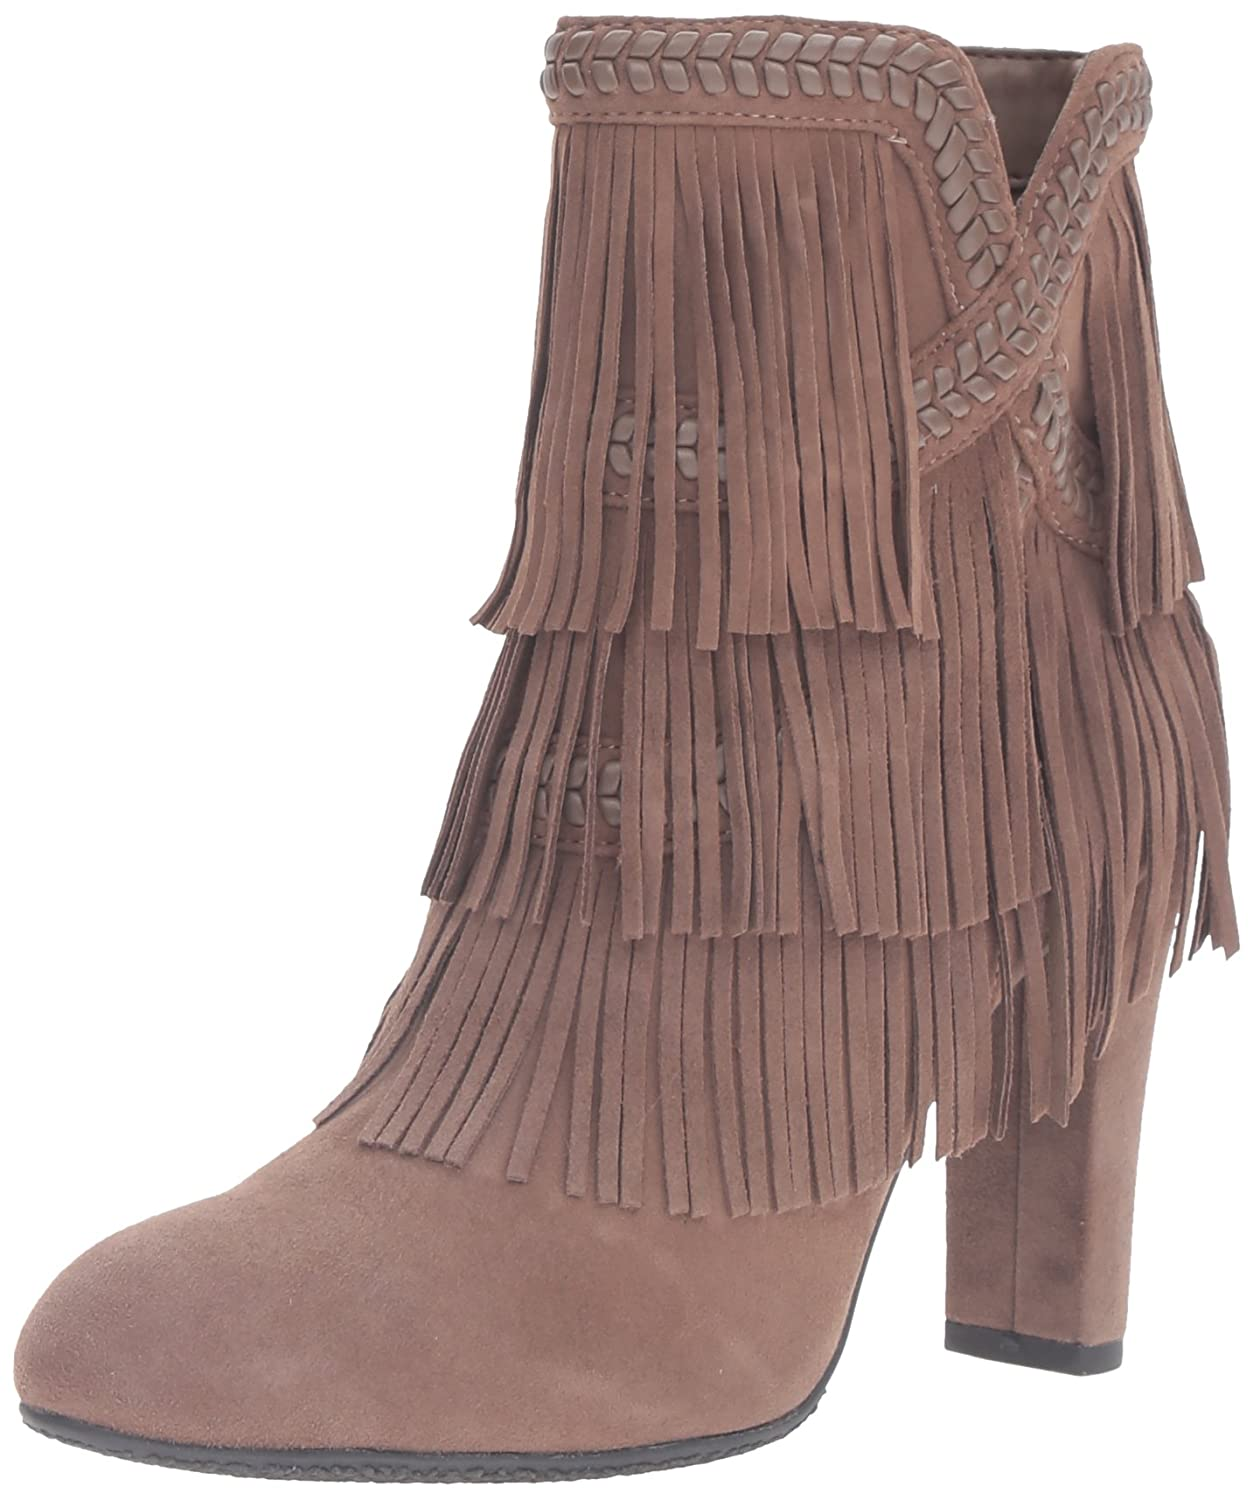 Sam 19992 New Edelman Cambell, Bottes Taupe Classiques Femme New Taupe 3fe58eb - reprogrammed.space